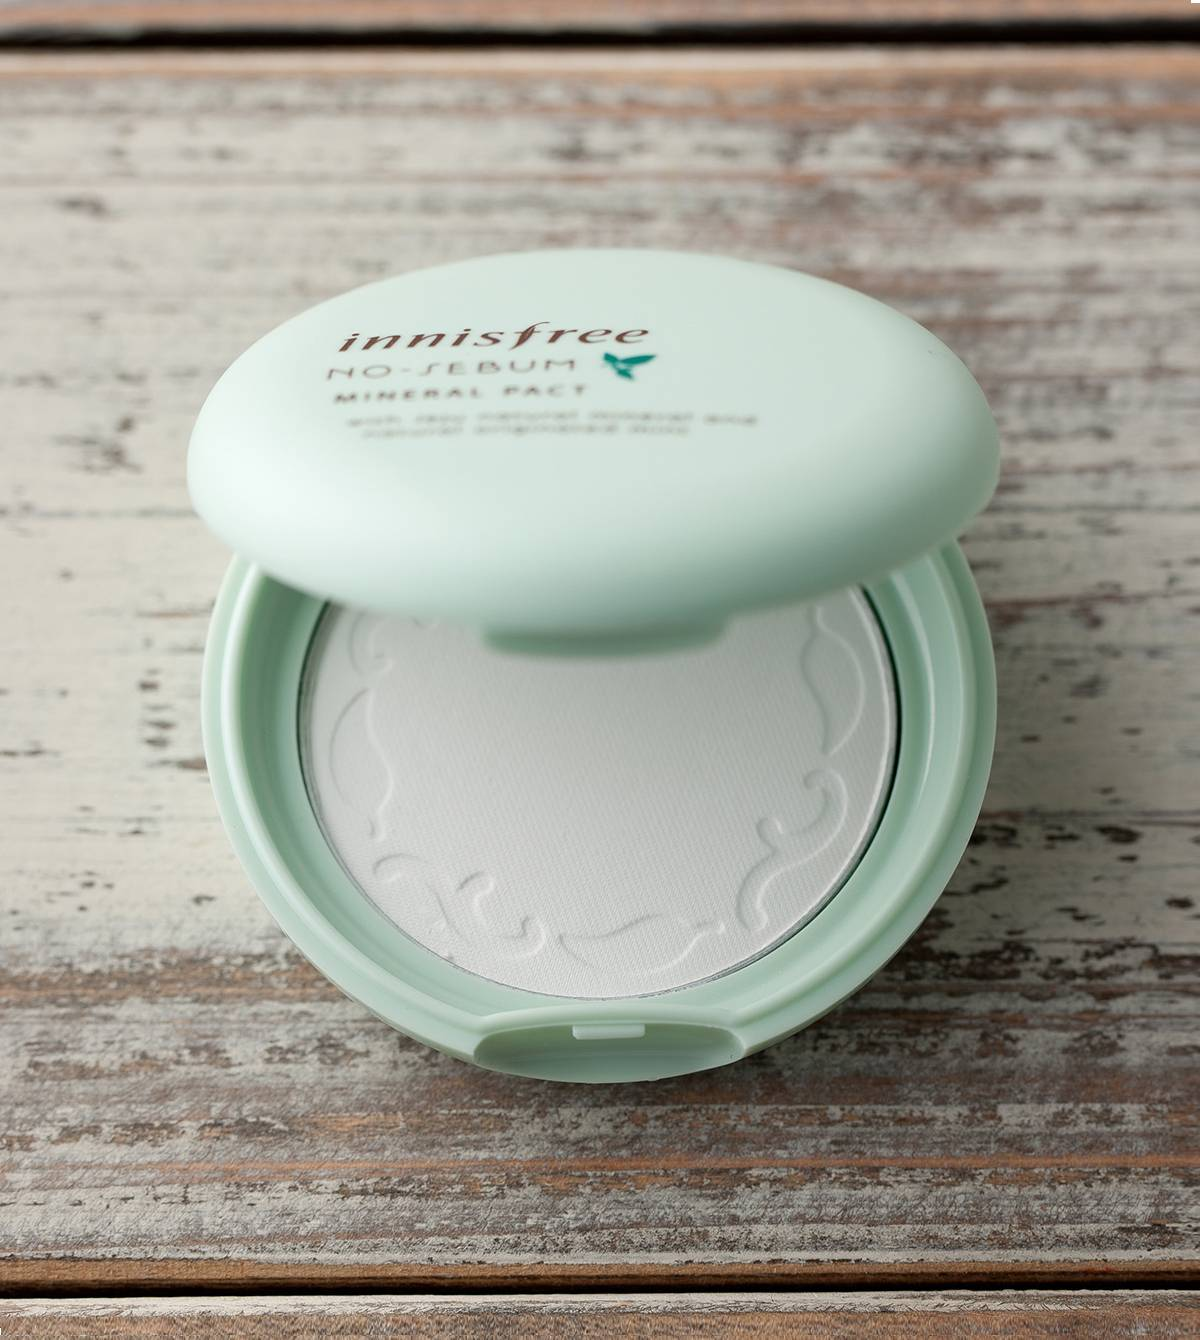 Innisfree No-Sebum mineral powder.